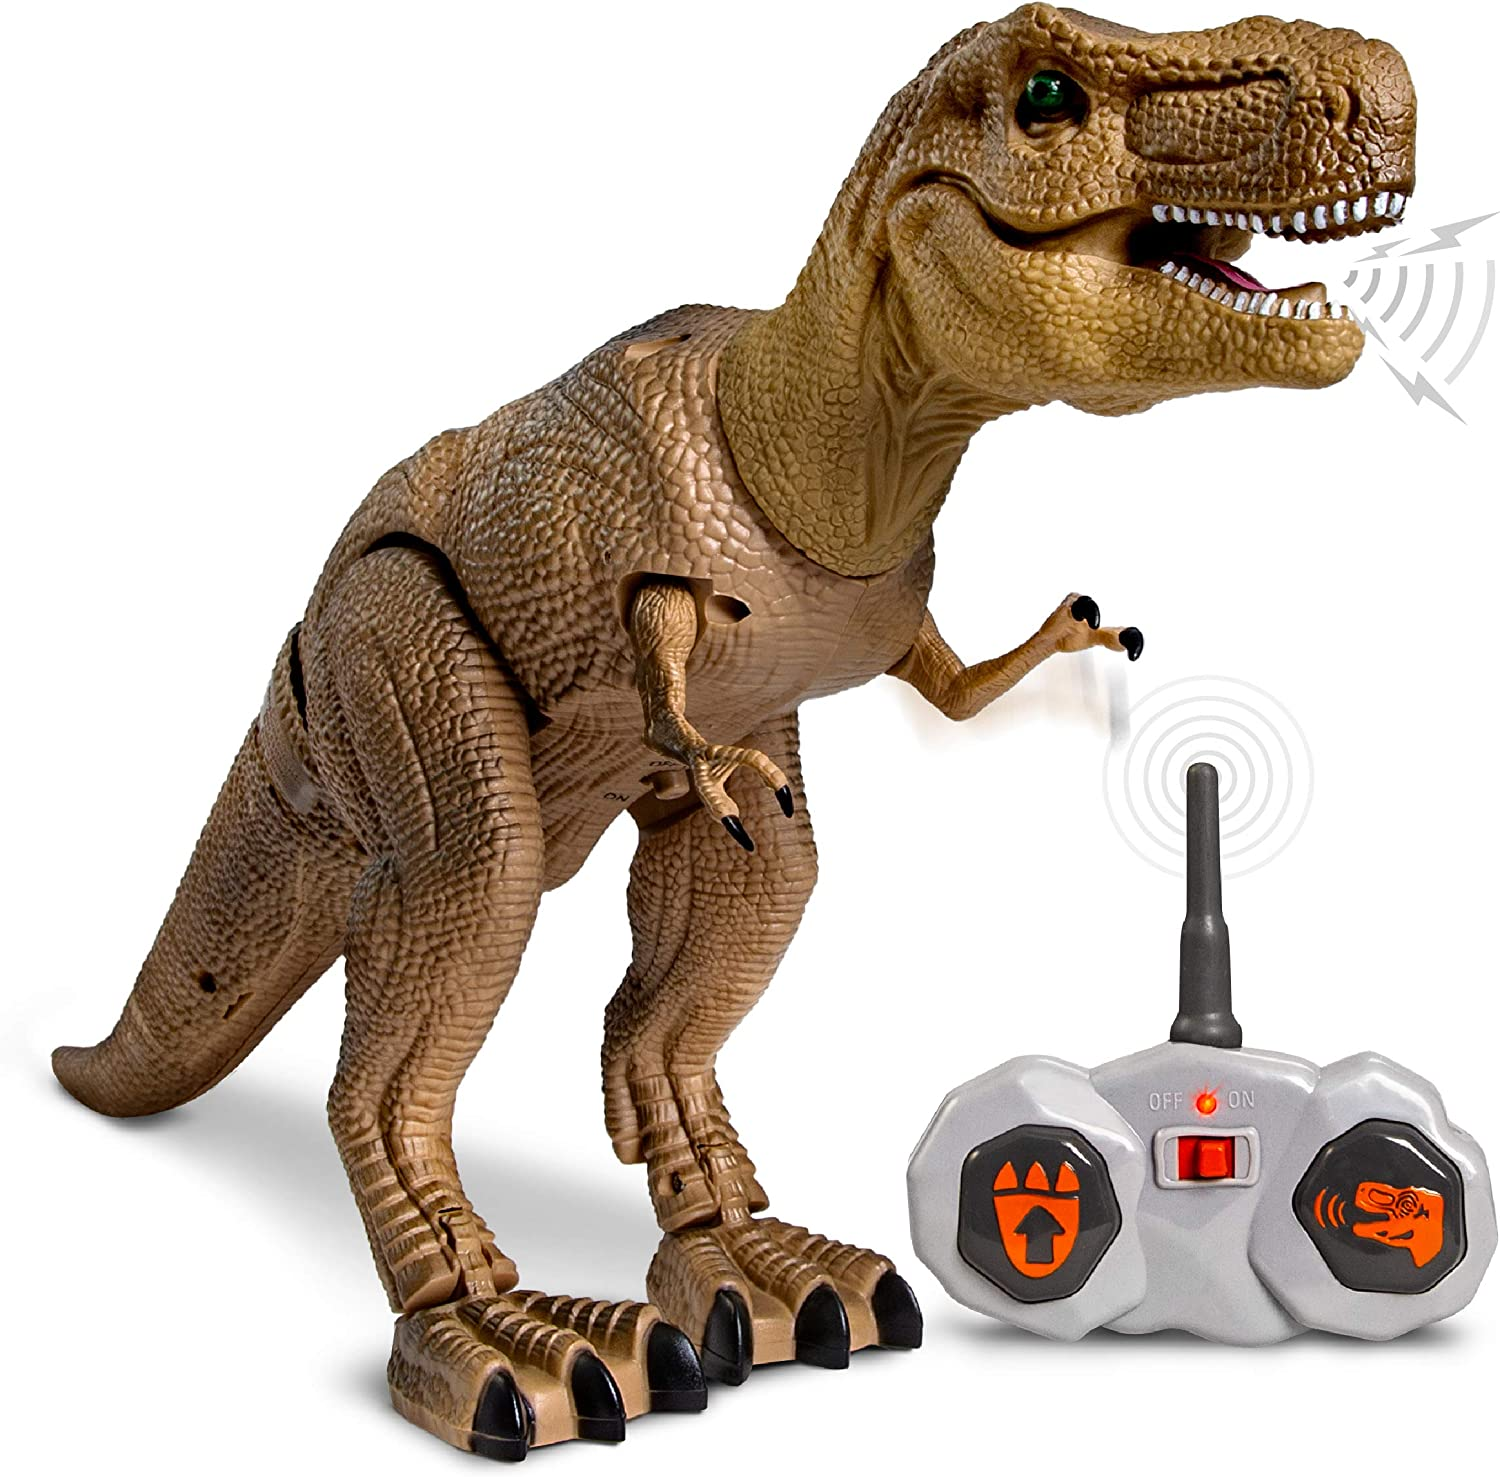 Top 10 Best Remote Control Dinosaurs (Gift Idea) For Toddlers 1